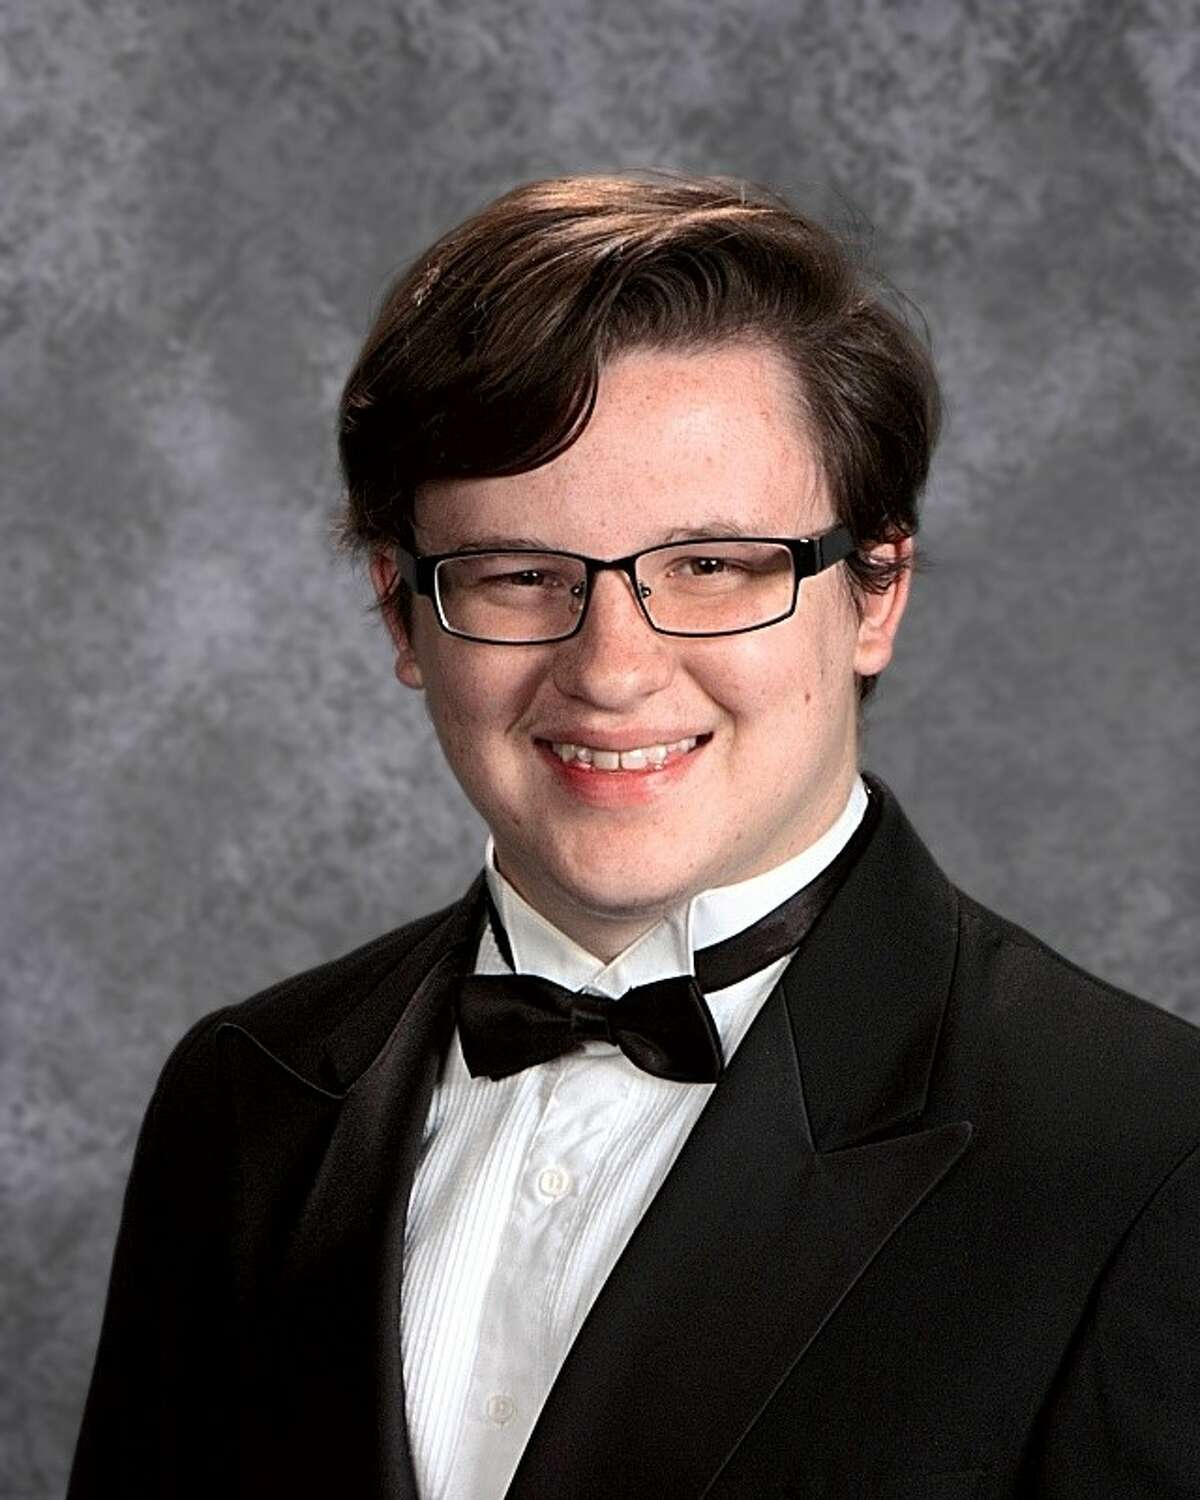 Andrews High School valedictorian Jordan Barton will be the first AISD student to be named a Presidential Scholar and the first to attend an Ivy League since the 1980s.